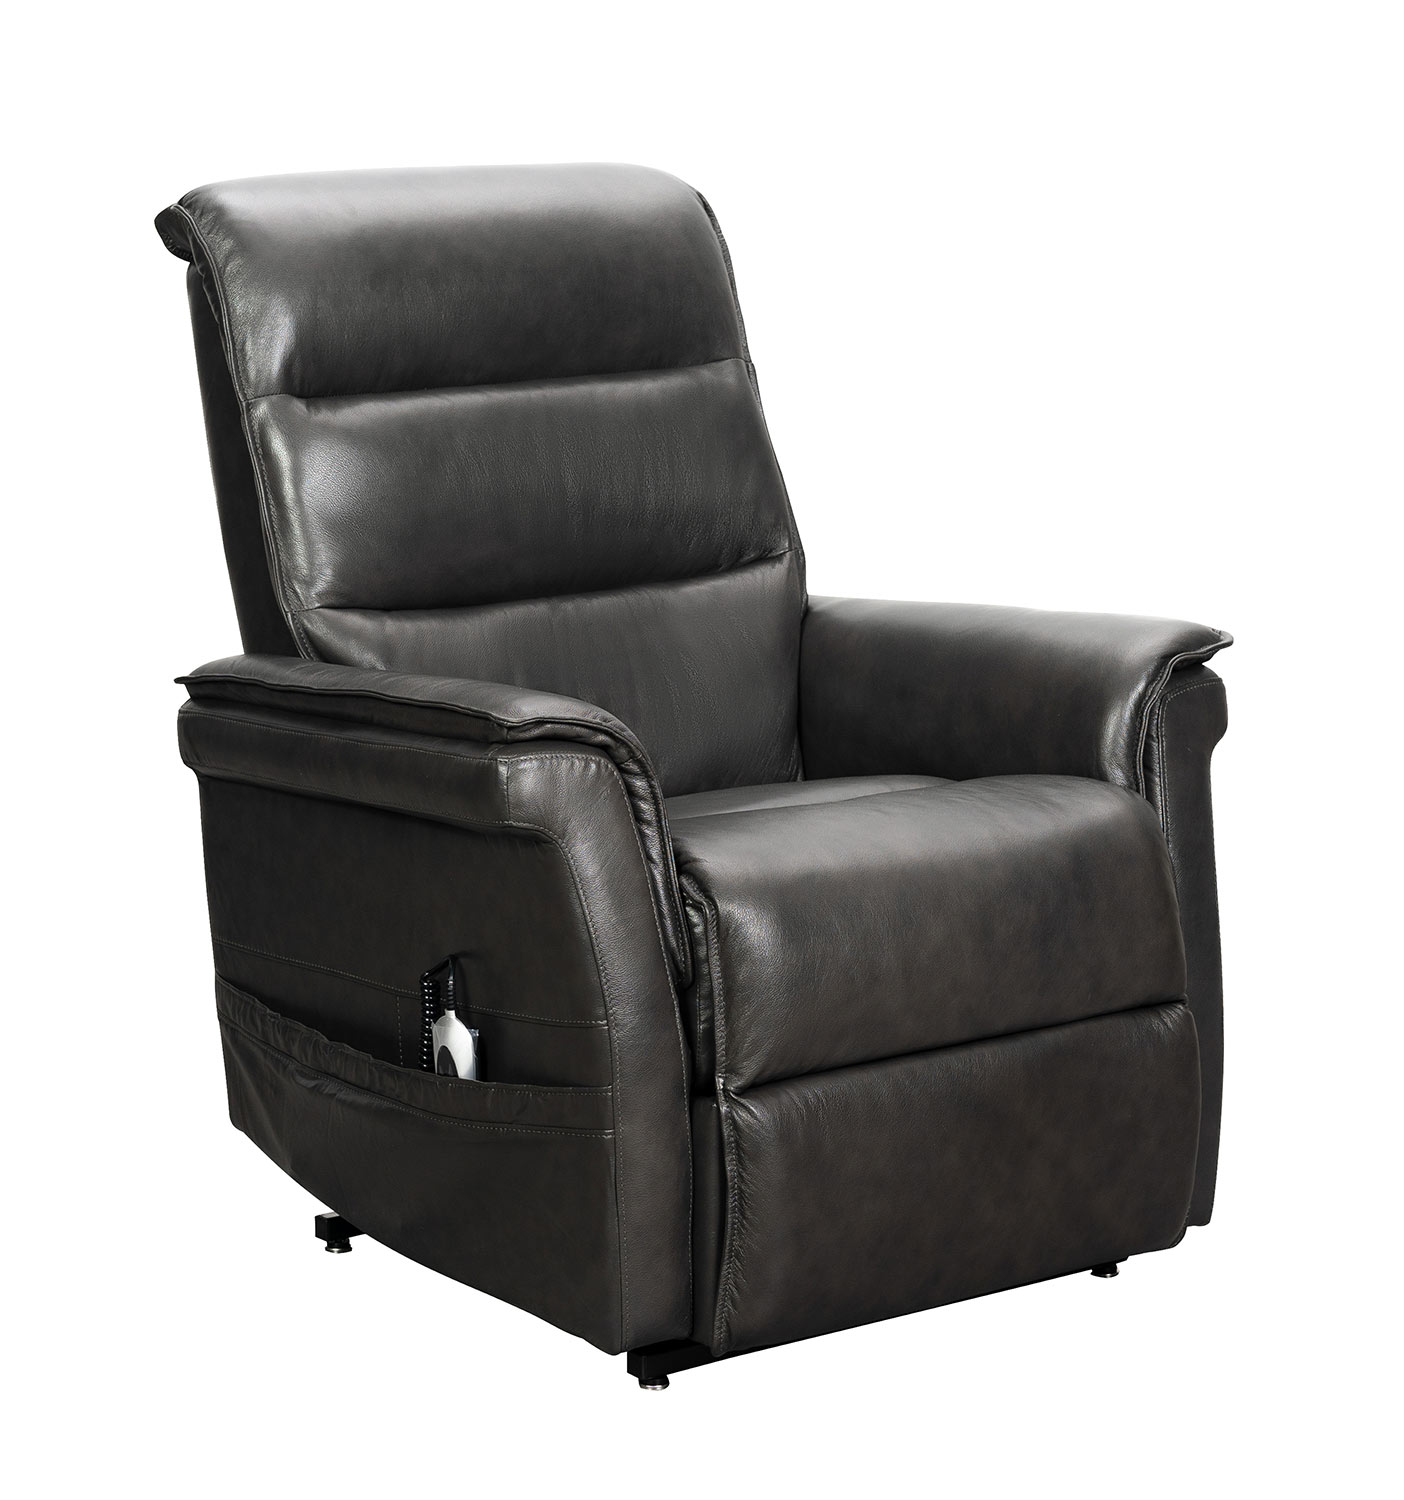 Barcalounger Luka Lift Chair Recliner with Power Head Rest - Venzia Grey/Leather Match